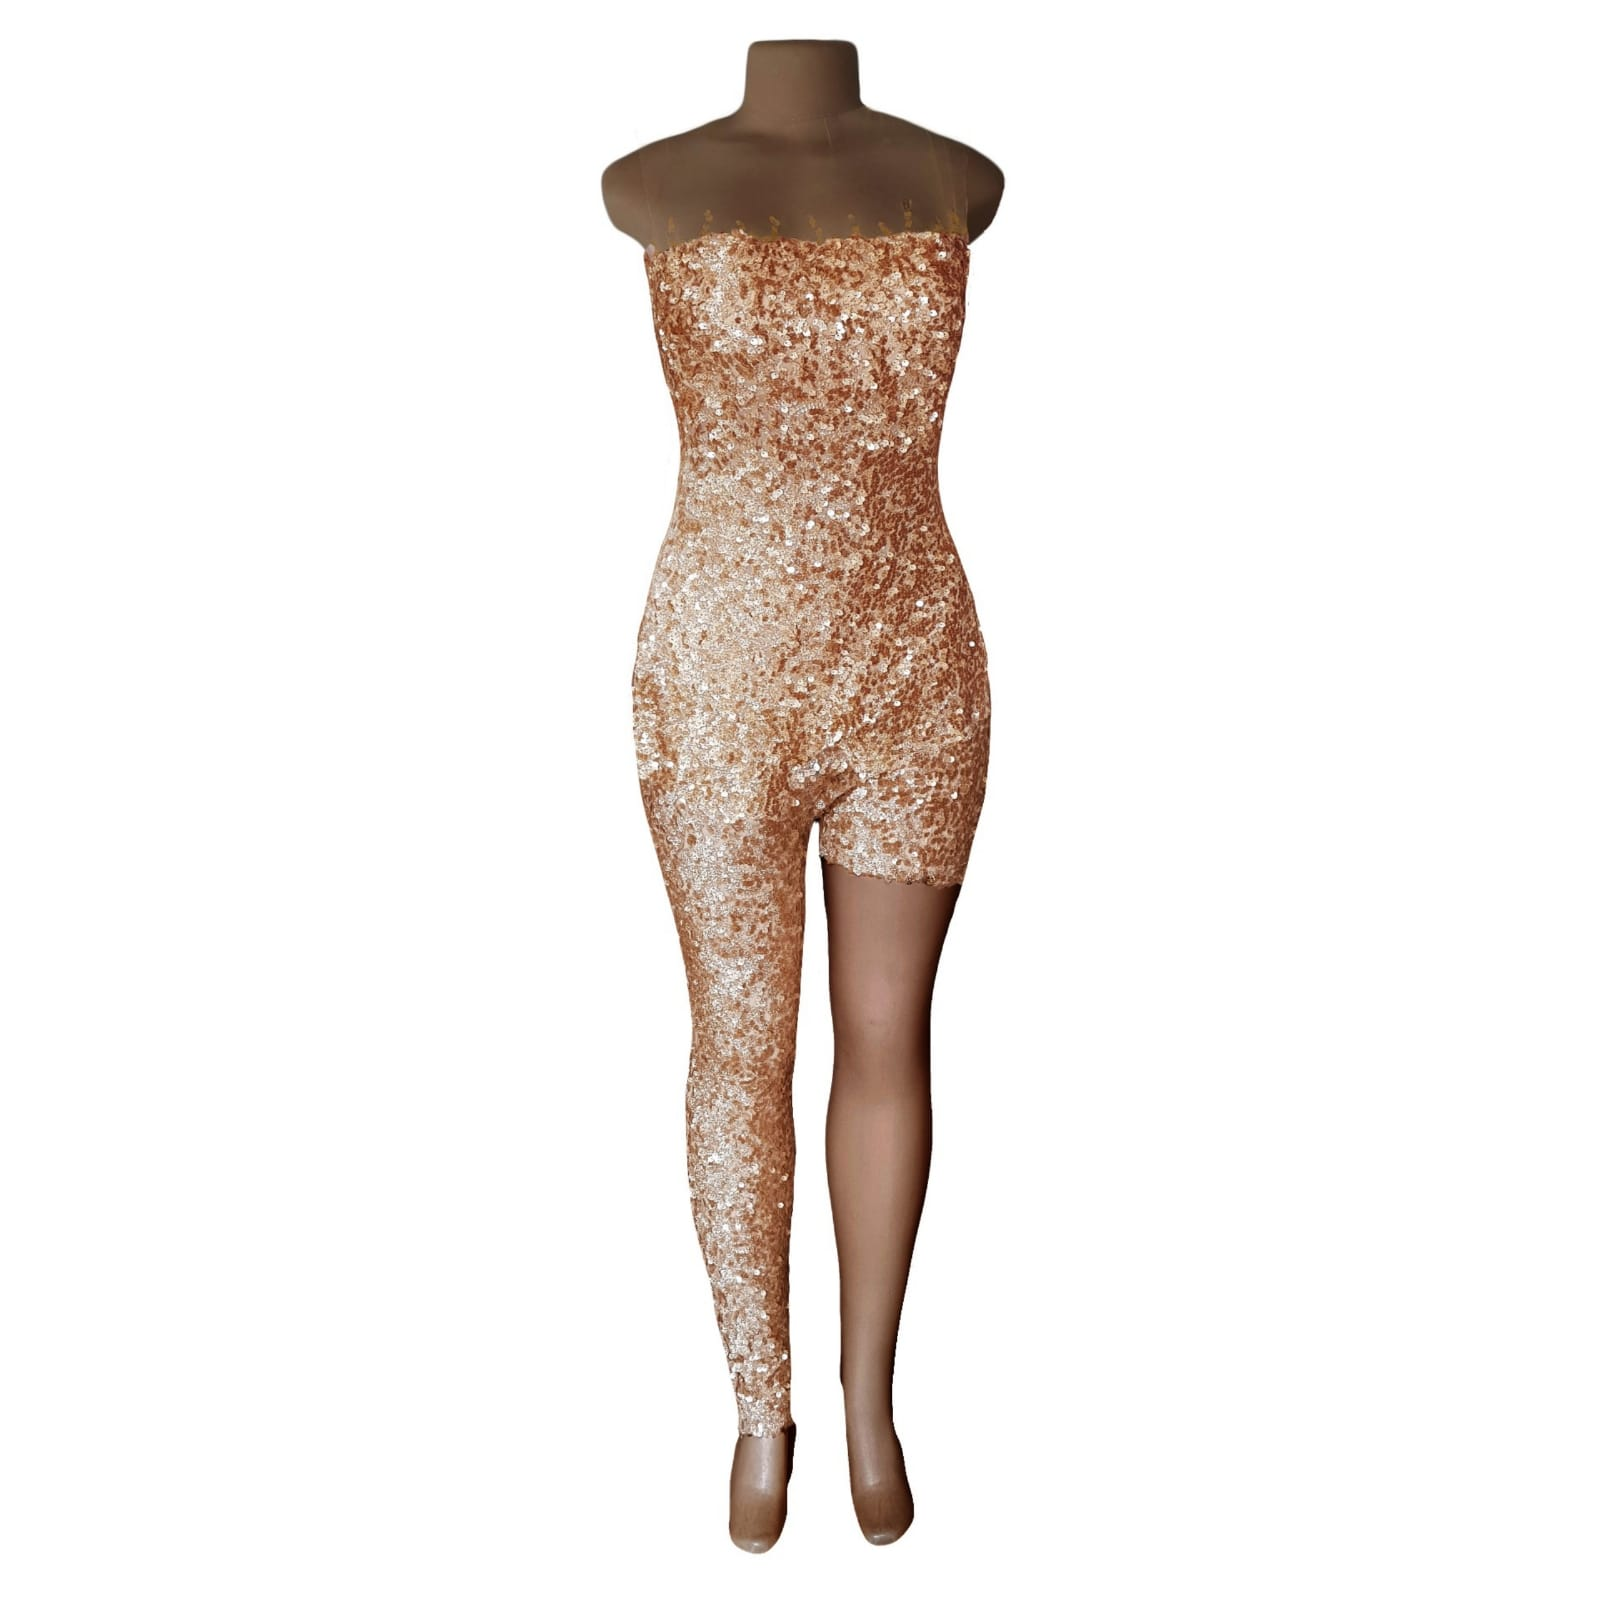 Gold sequins evening wear bodysuit 5 gold sequins evening wear bodysuit with an illusion neckline and sleeves, detailed with gold beads. With a long and short leg. Detachable side gold train.